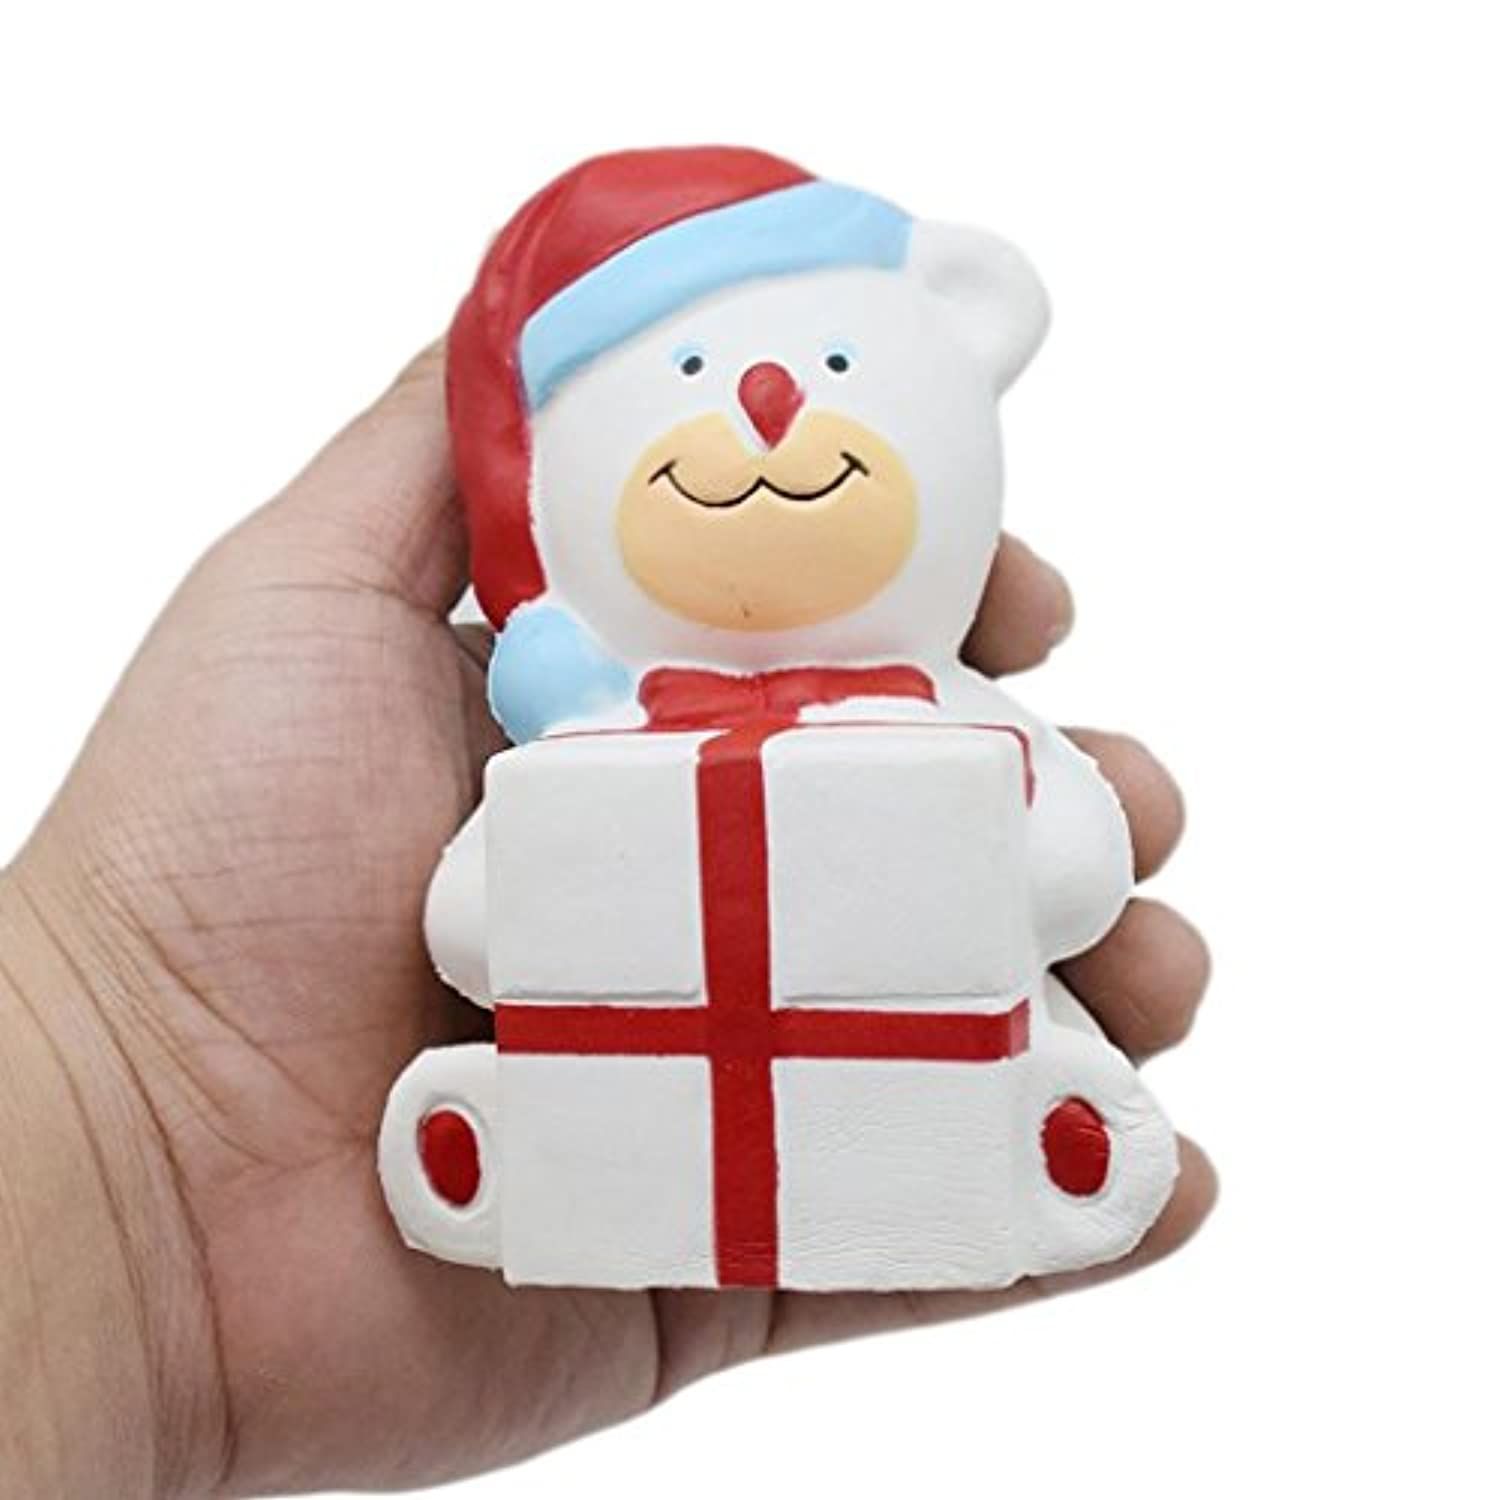 cinhentソフト漫画クリスマスBear Holding aビッグギフトボックスSquishy Slow Rising Squeeze応力Reliever Toy